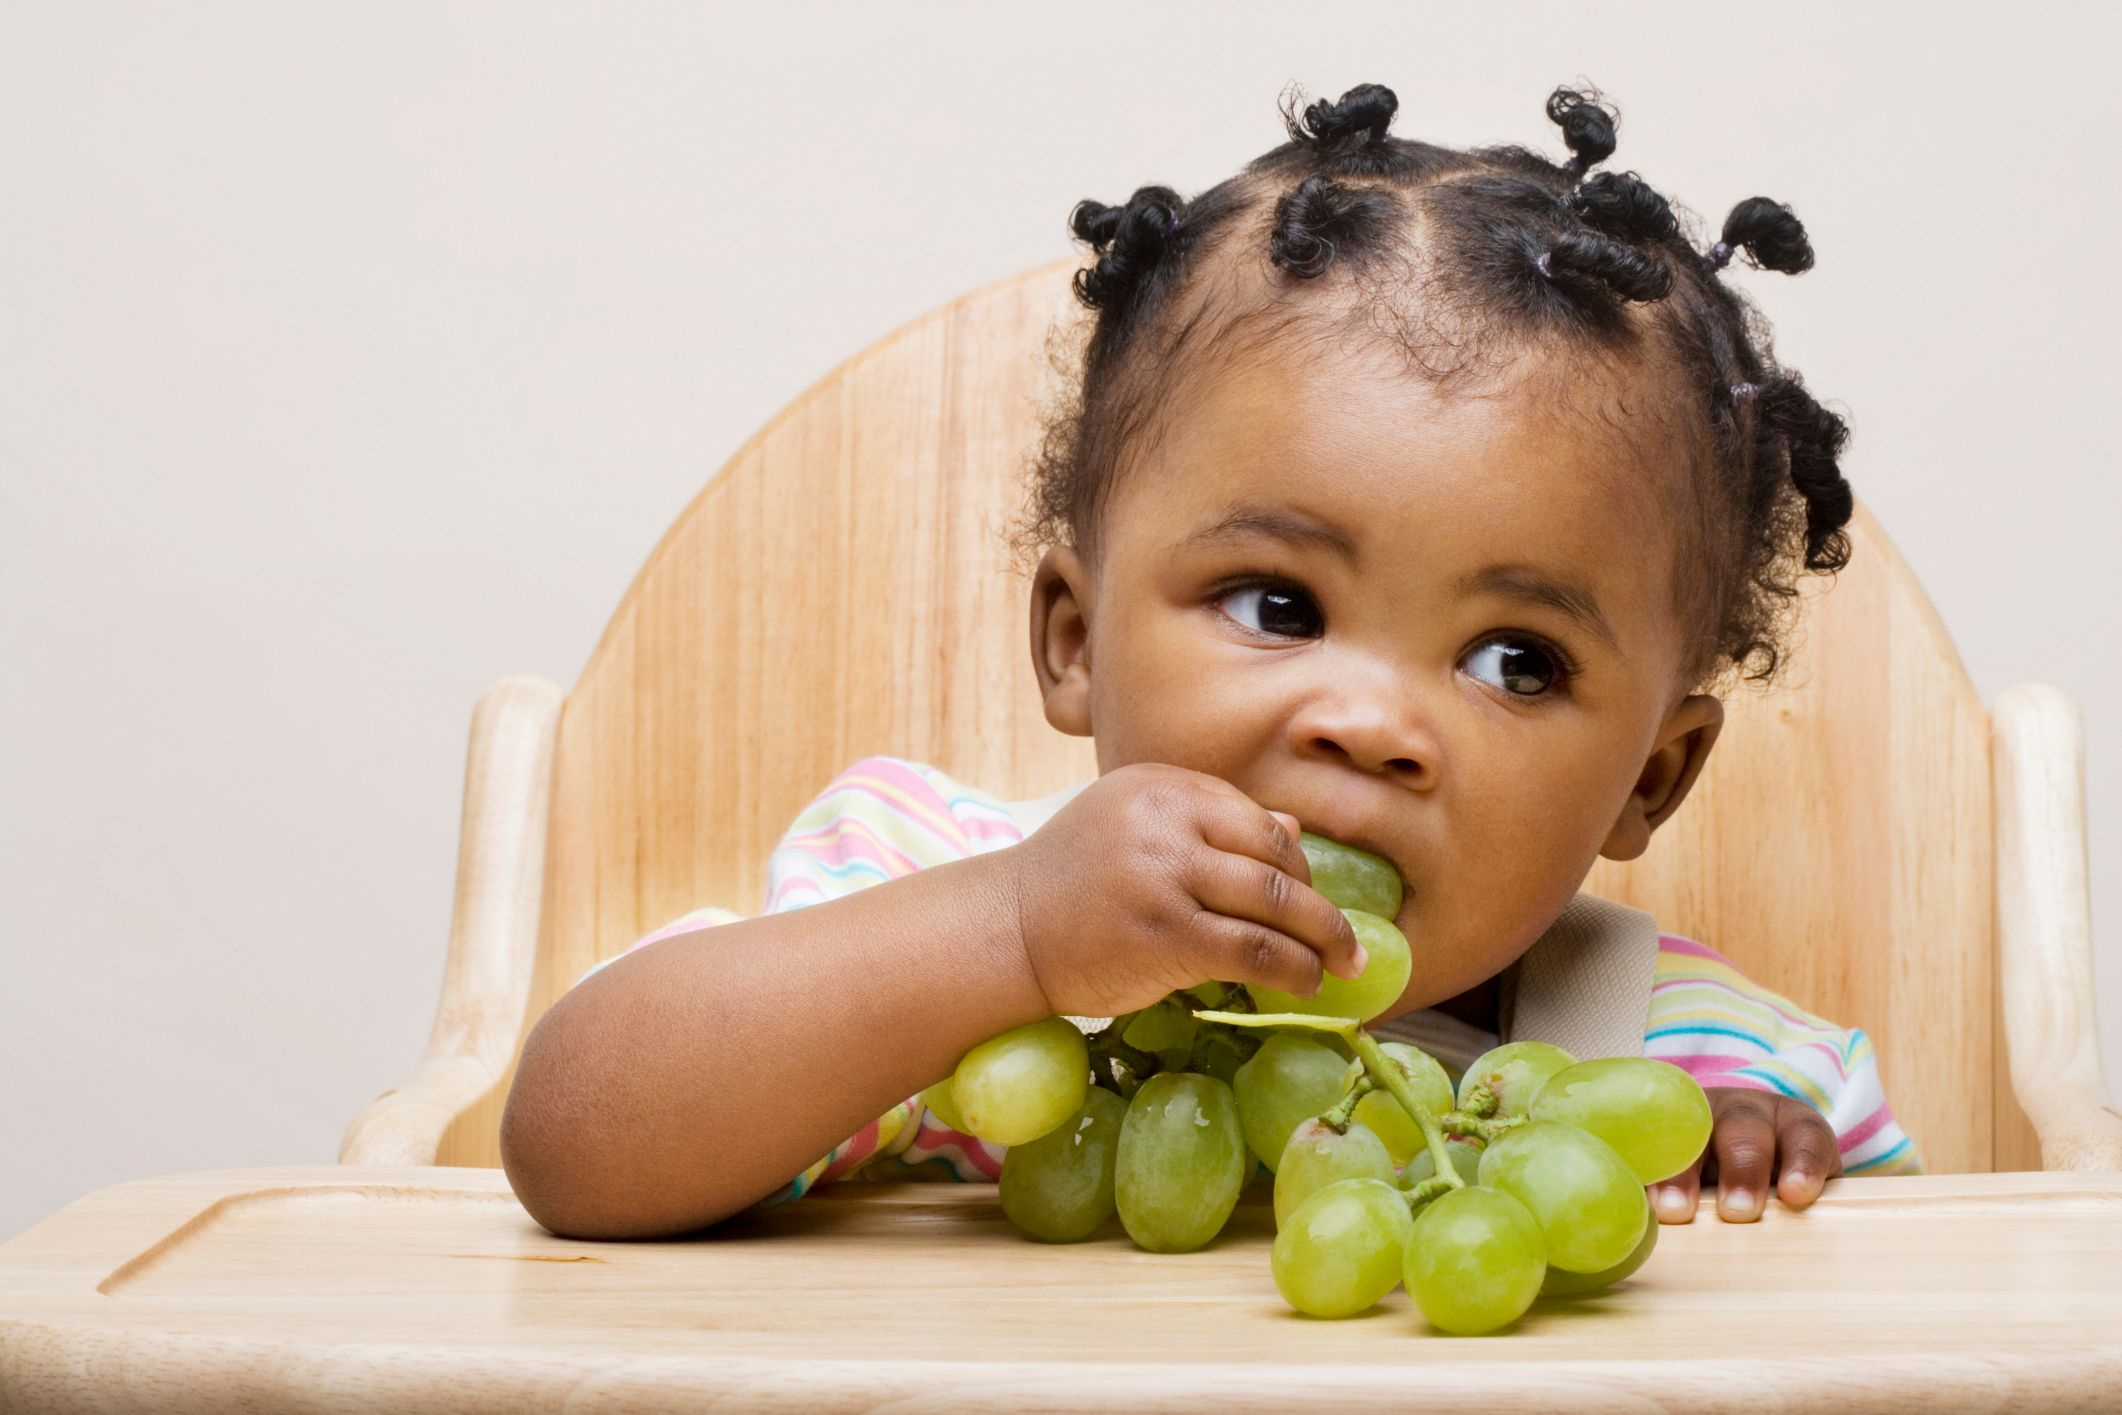 A baby eating grapes